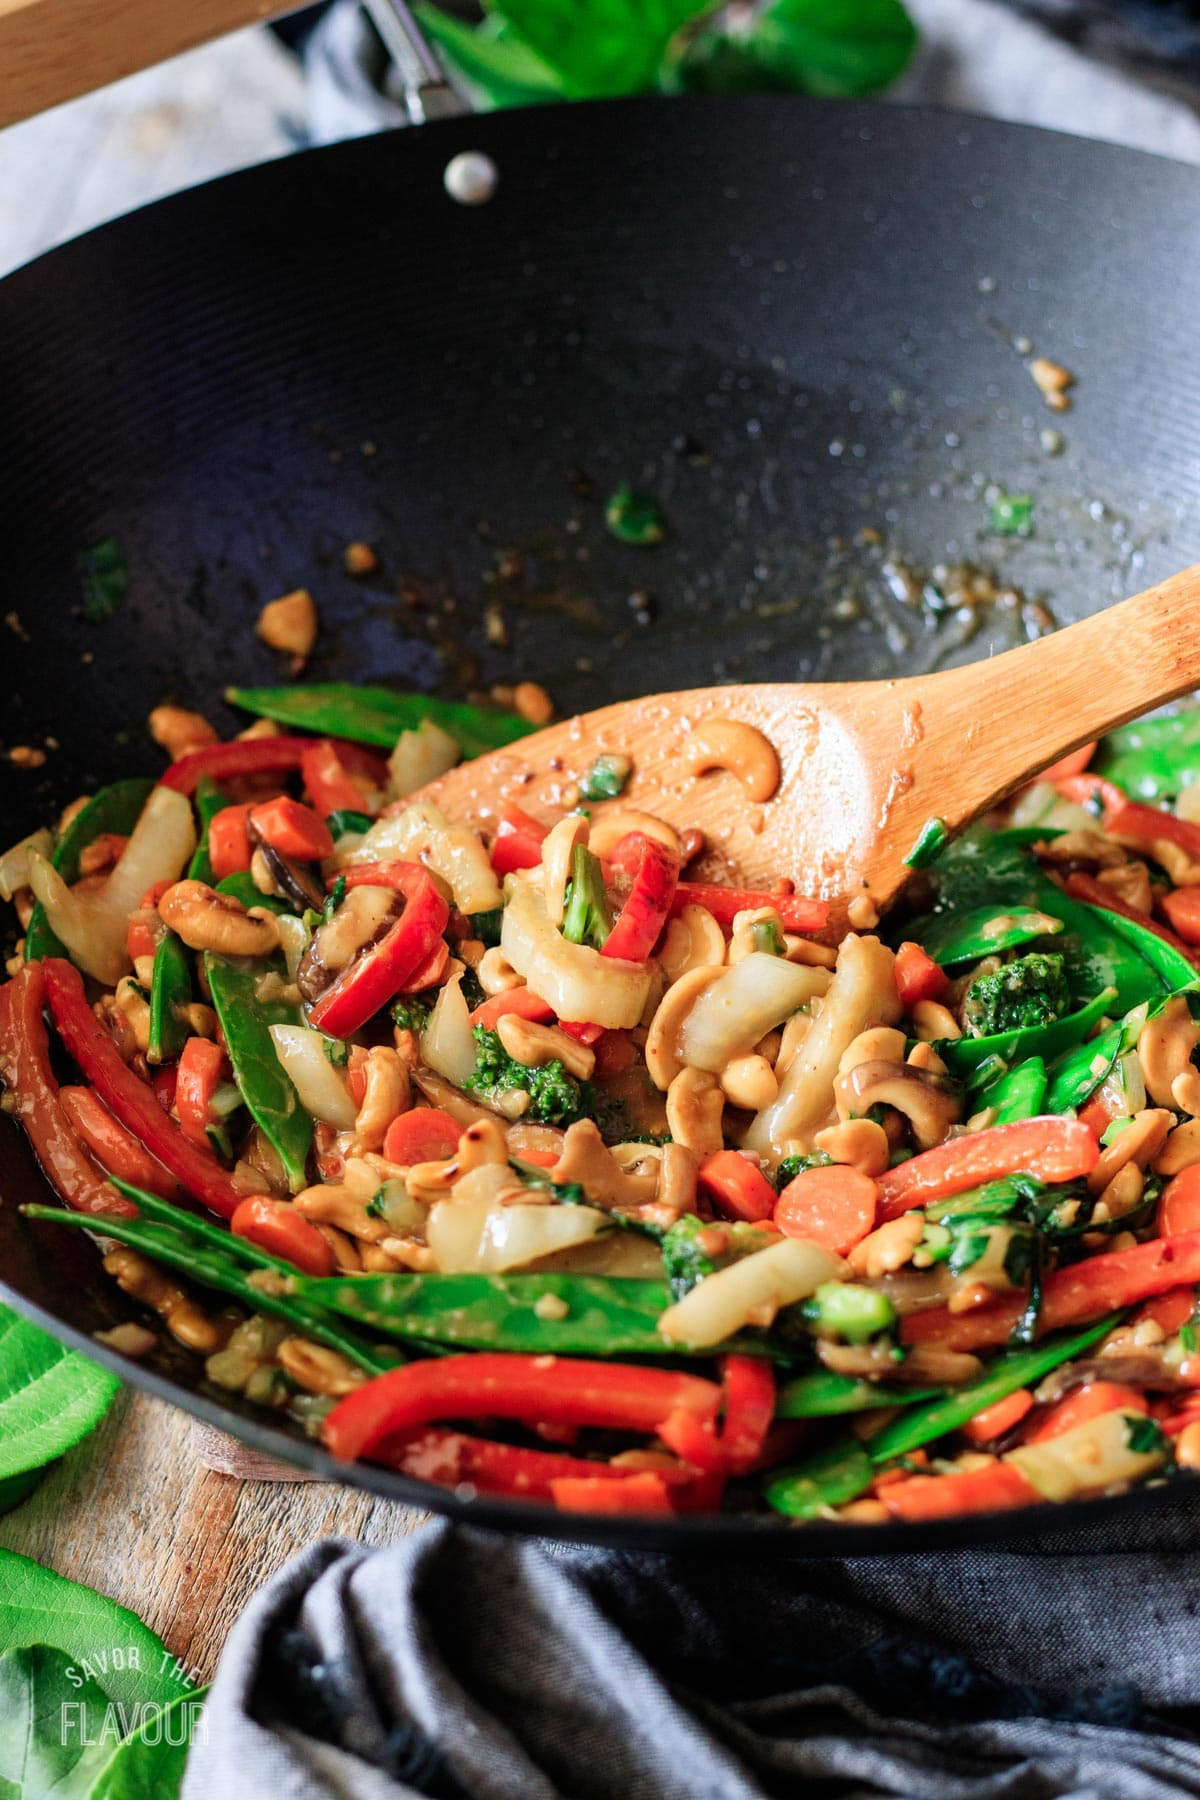 mixing the stir fry vegetables with the peanut sauce